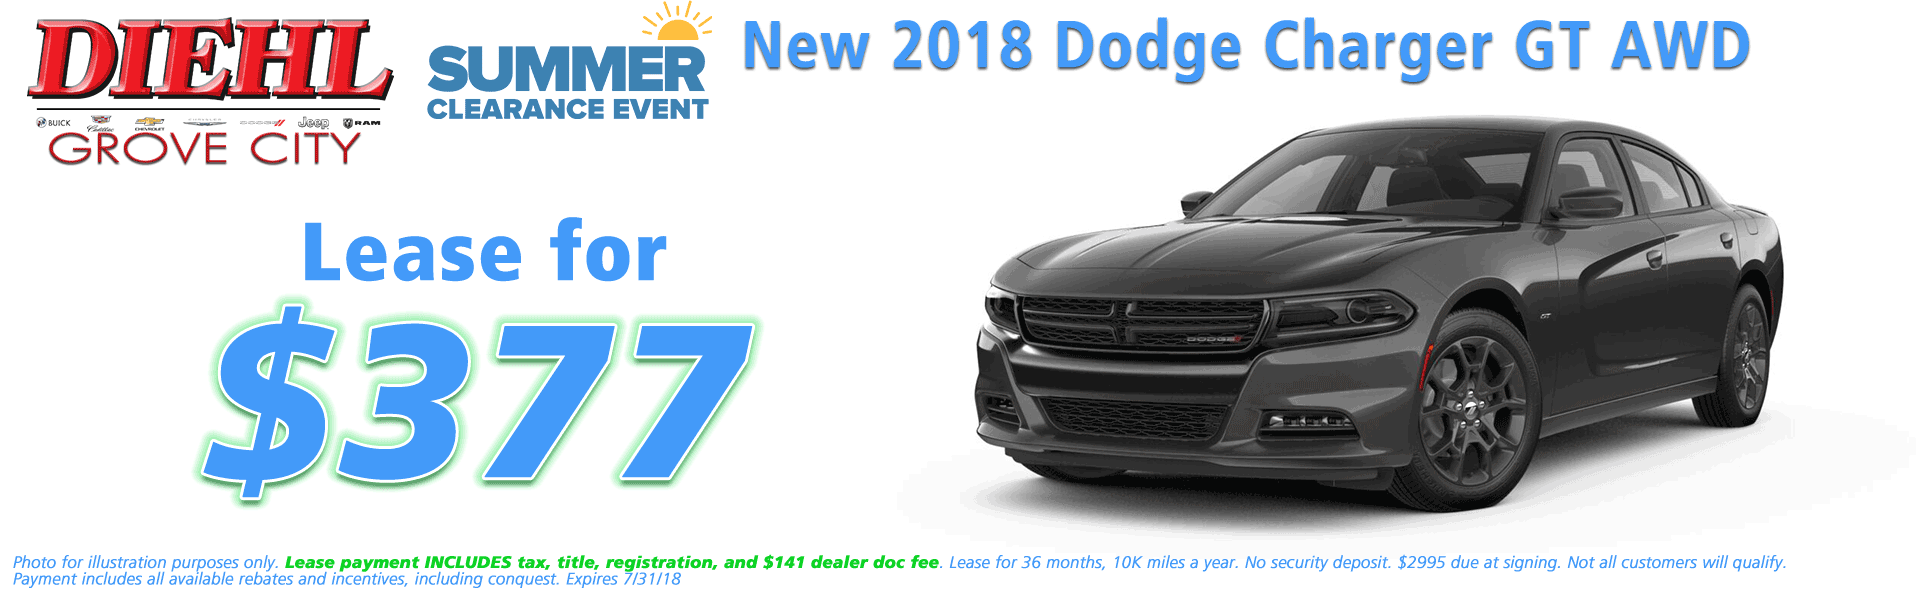 Diehl of Grove City, Grove City, PA 16127 Chrysler Jeep Dodge Ram Chevrolet Buick Cadillac NEW 2018 DODGE CHARGER GT PLUS AWD